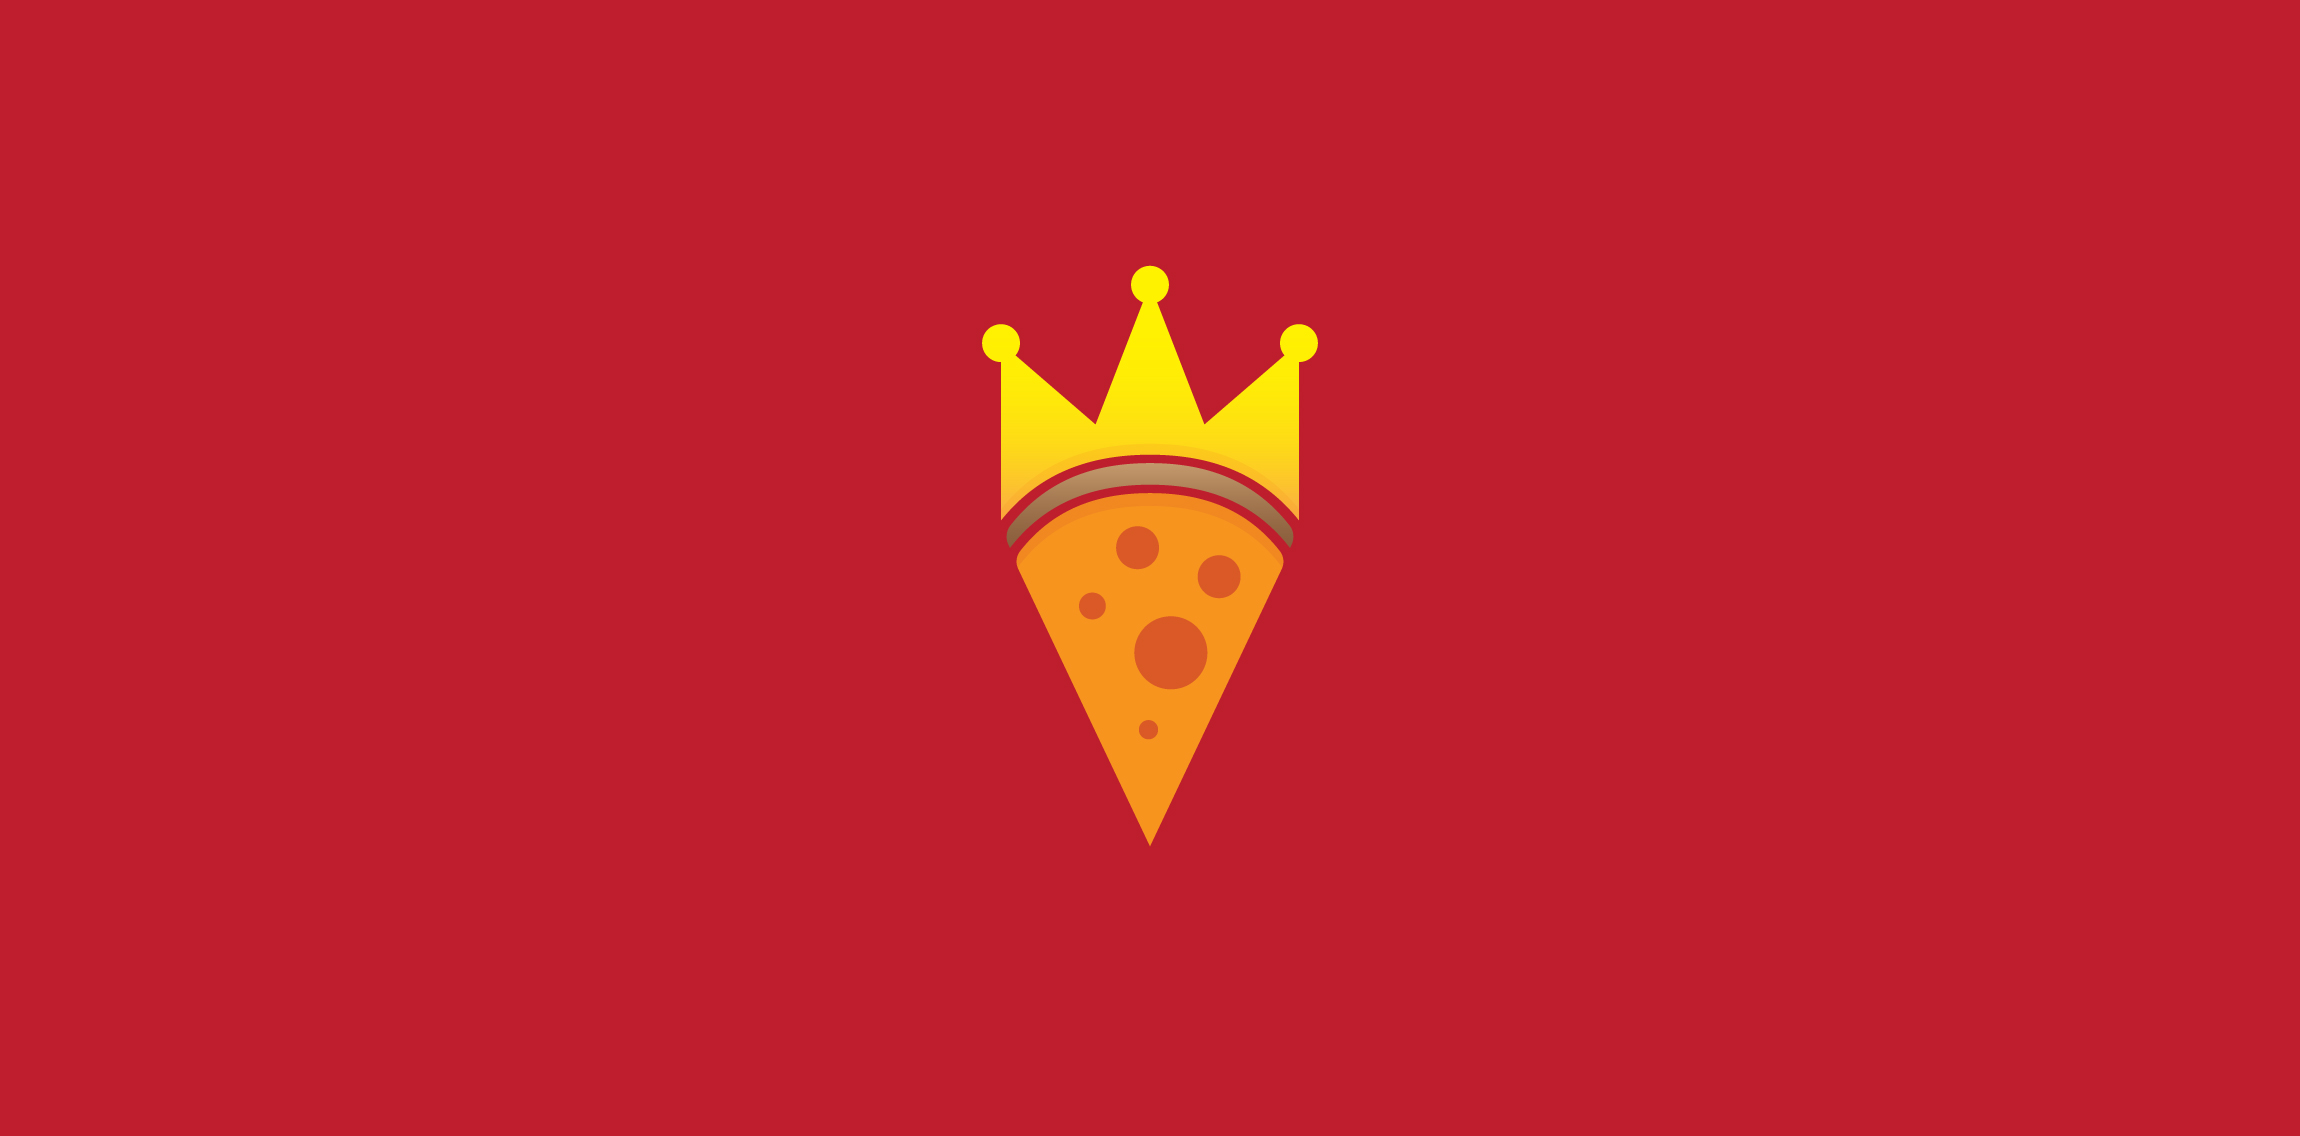 King Pizza.